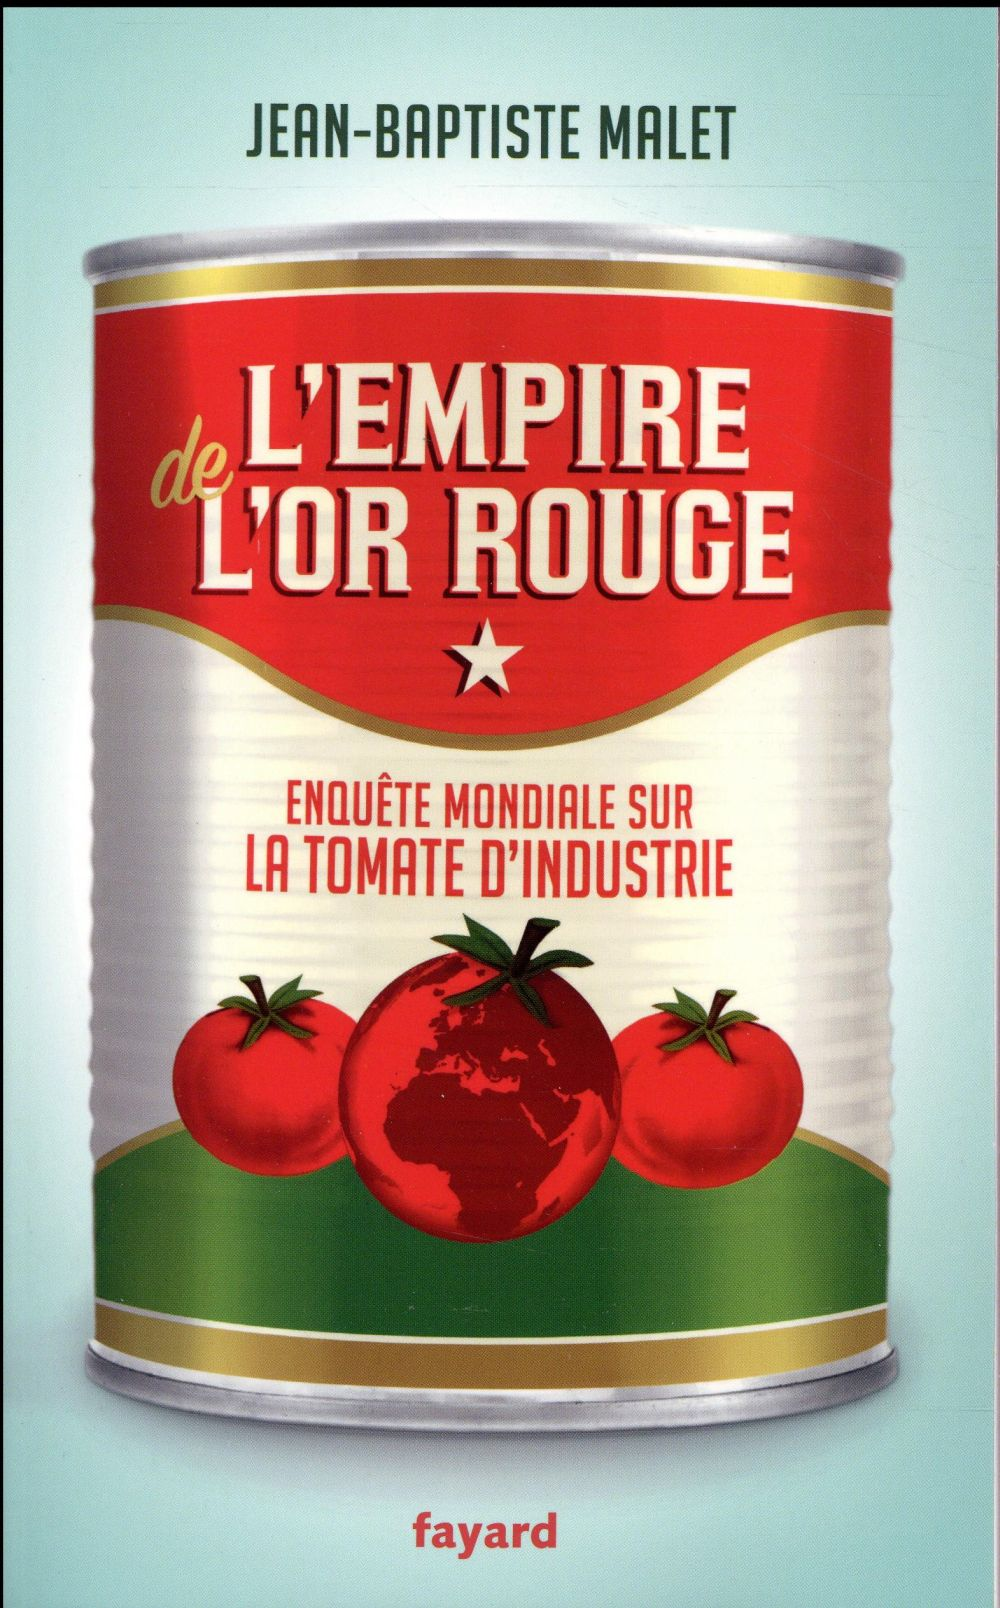 L'EMPIRE DE L'OR ROUGE - ENQUETE MONDIALE SUR LA TOMATE D'INDUSTRIE